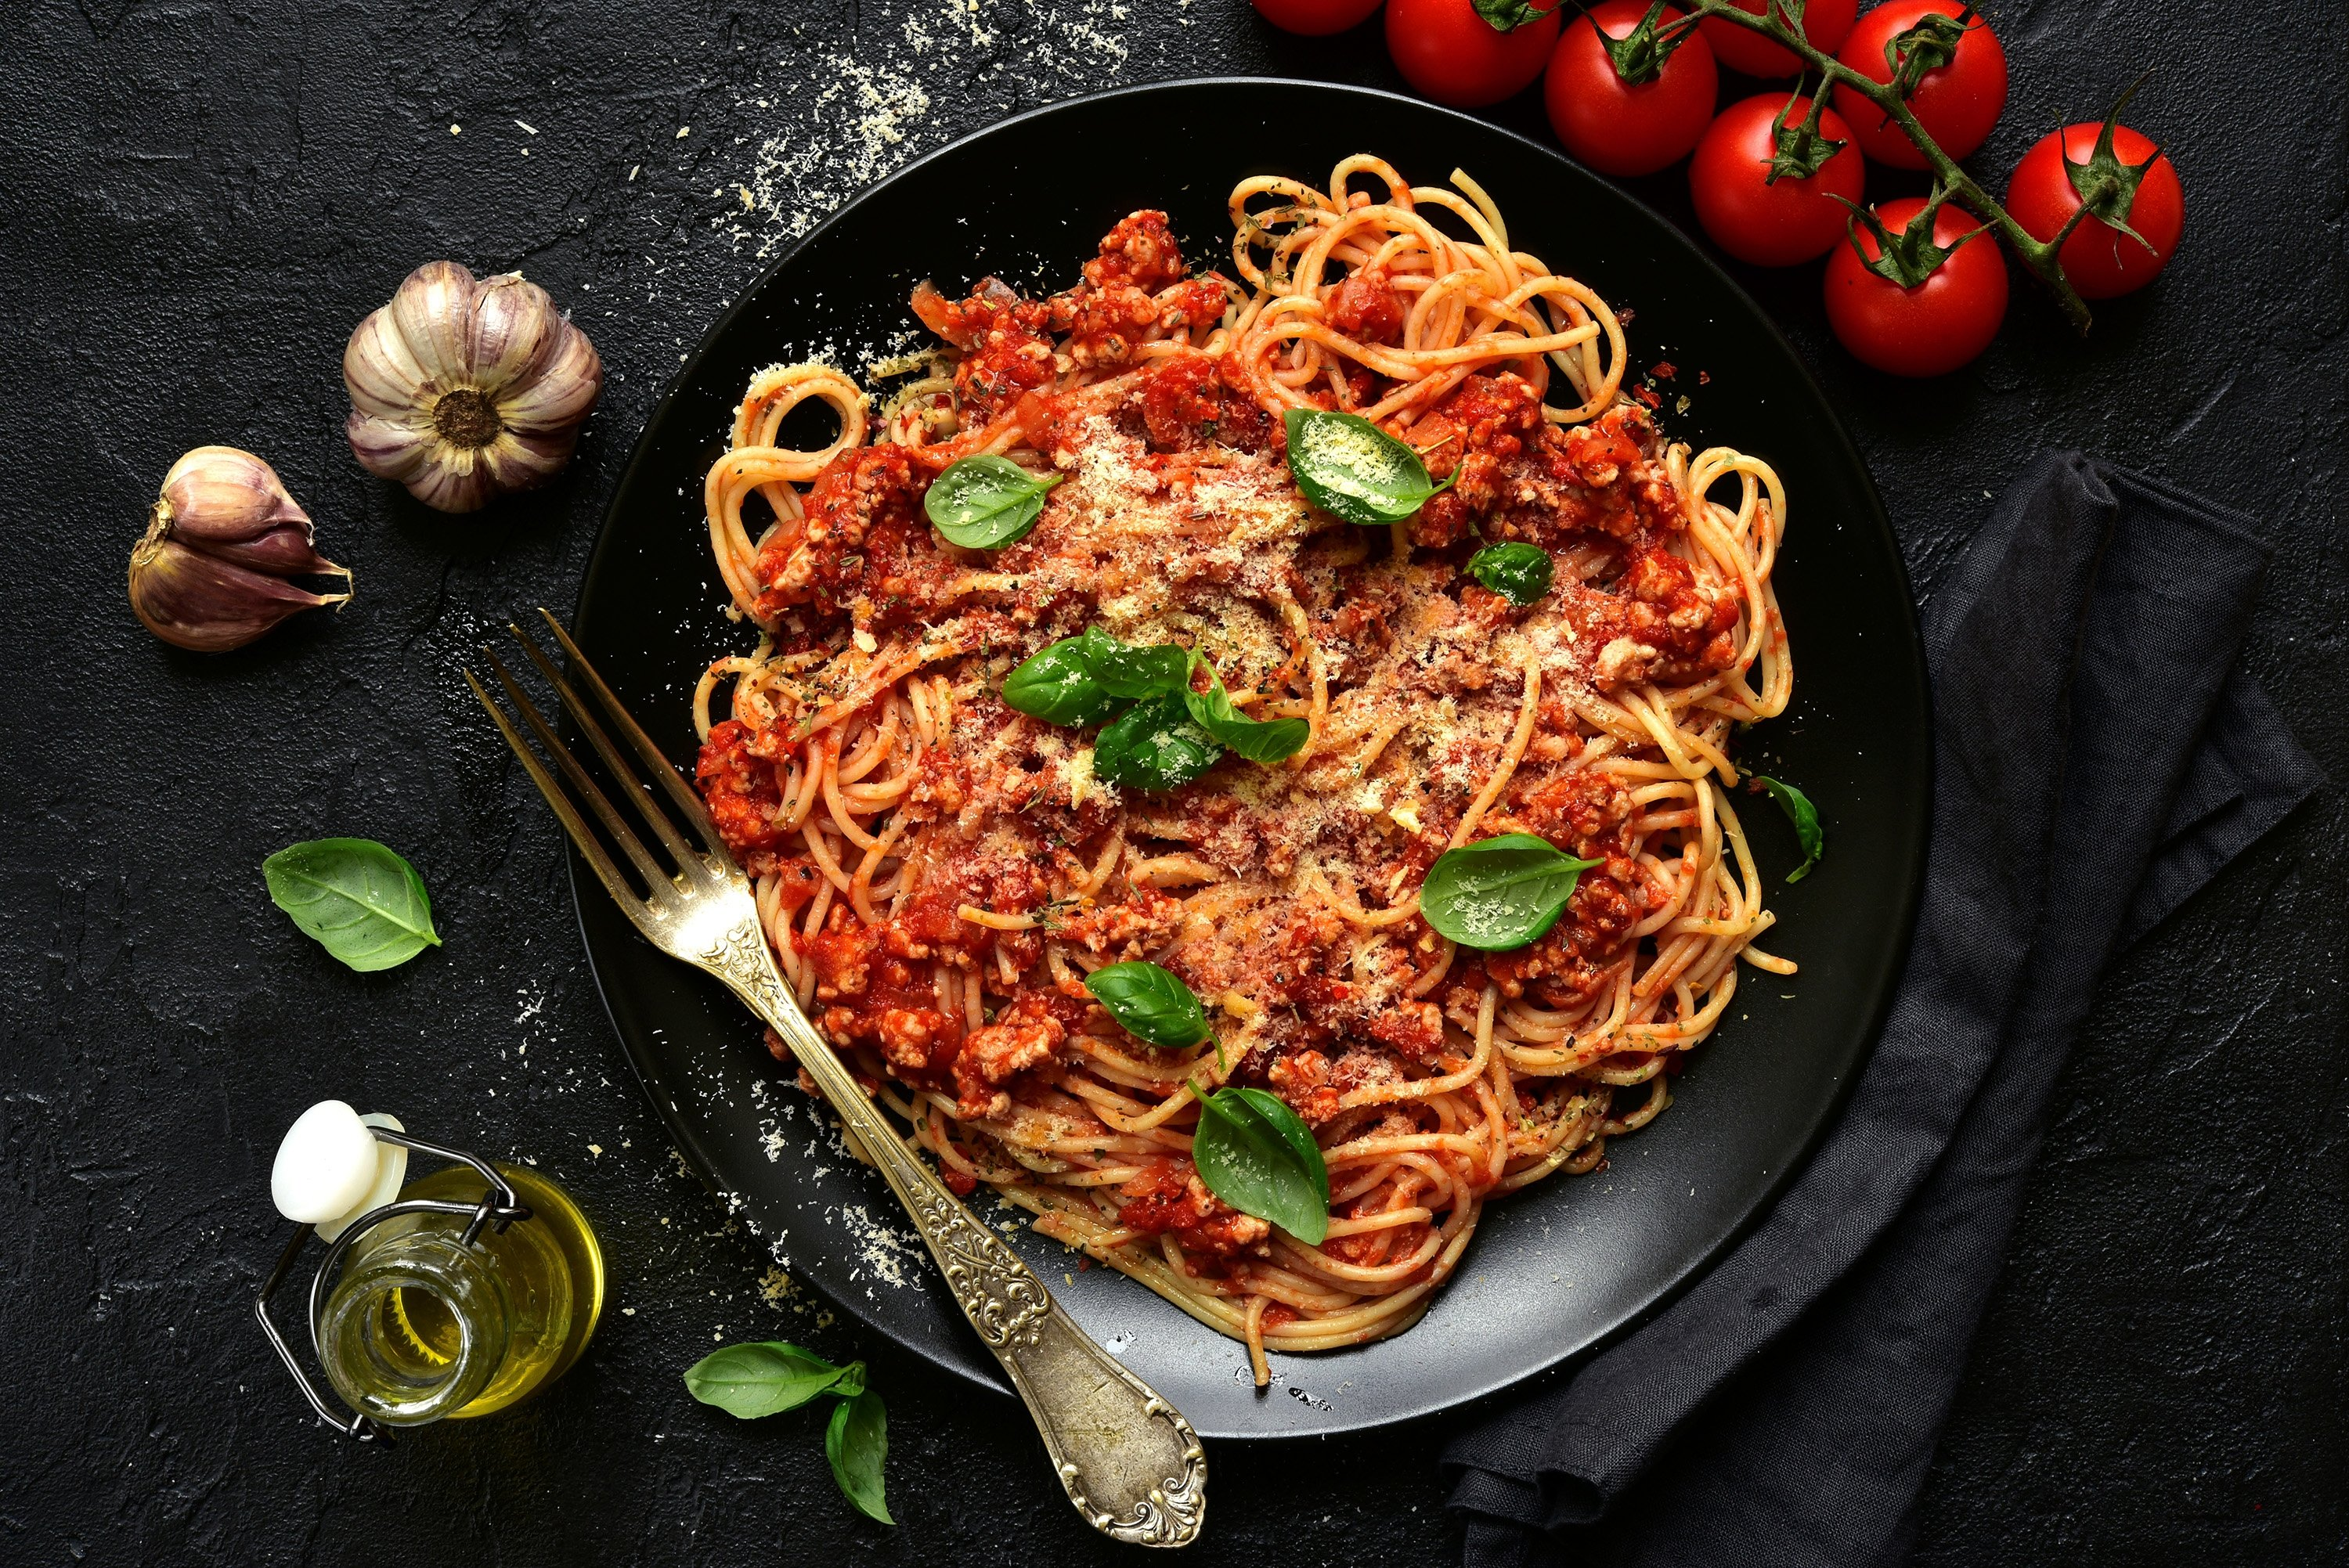 Fresh basil leaves and plenty of parmesan are a great way to top off bolognese. (Shutterstock Photo)